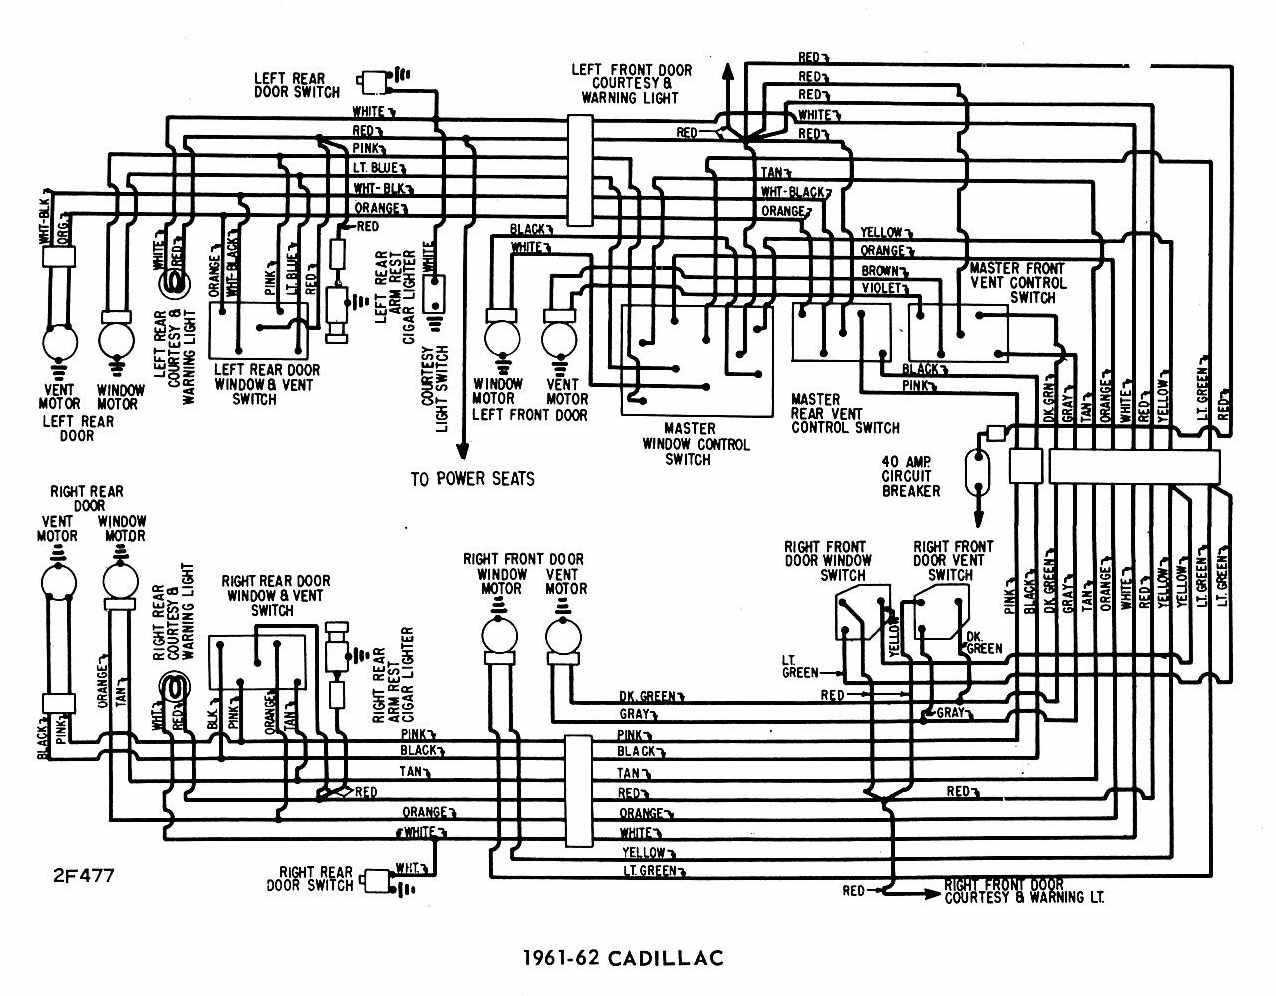 Lincoln Ls 2000 2006 Fuse Box Diagram as well Meaning in addition 2002 Miata Fuse Box Diagram besides Ford Mustang V6 And Ford Mustang Gt 2005 2014 Fuse Box Diagram 400063 furthermore 2003 Lexus Ls430 Fuse Box. on 2004 ford thunderbird engine diagram